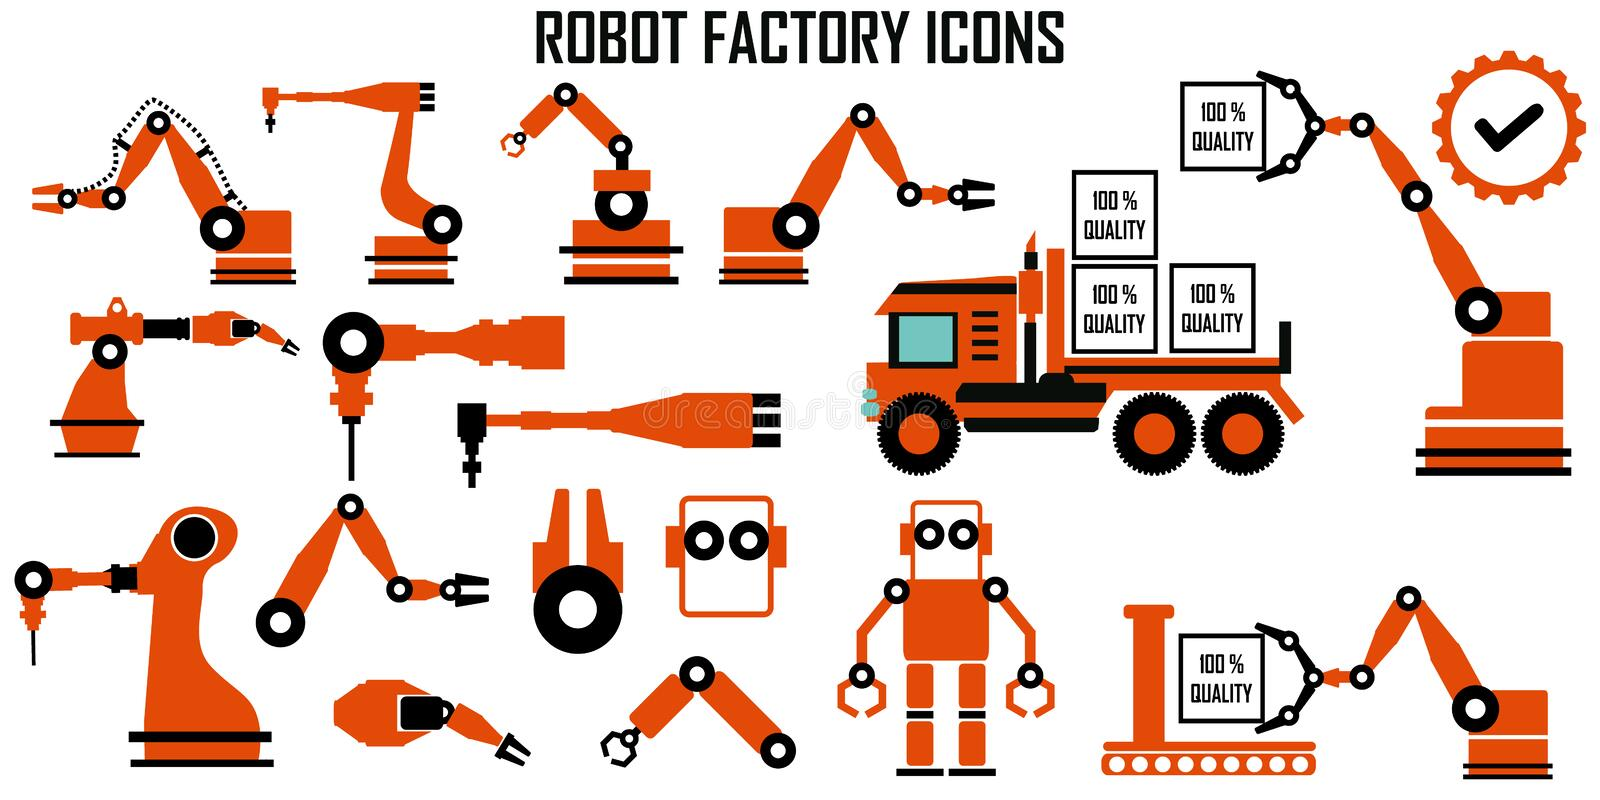 ROBOT MECHANIC FACTORY INDUSTRY MANUFACTURE VECTOR ICONS MONO SYMBOL stock illustration